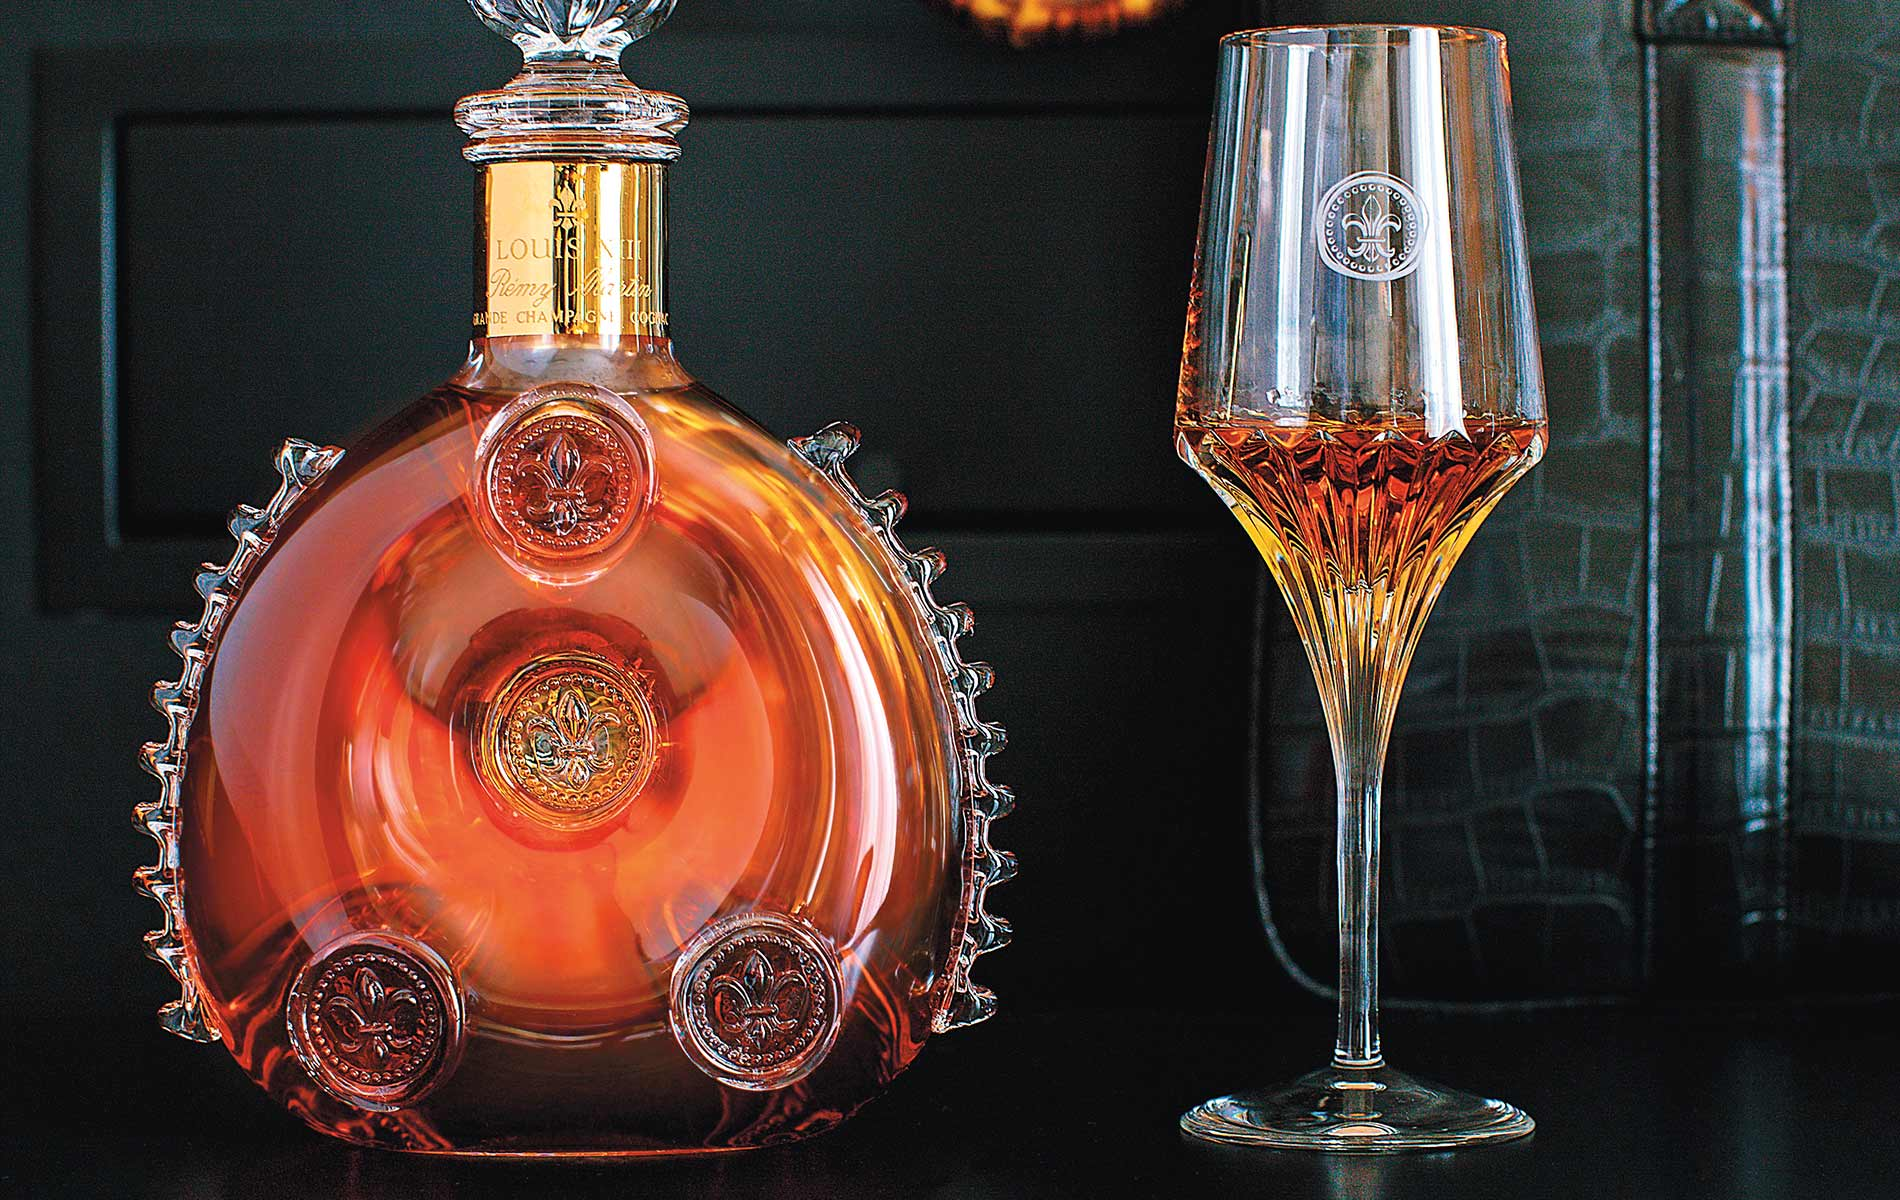 Beautiful Louis XIII decanter product shot Capt Andersons The Sophisticate Issue